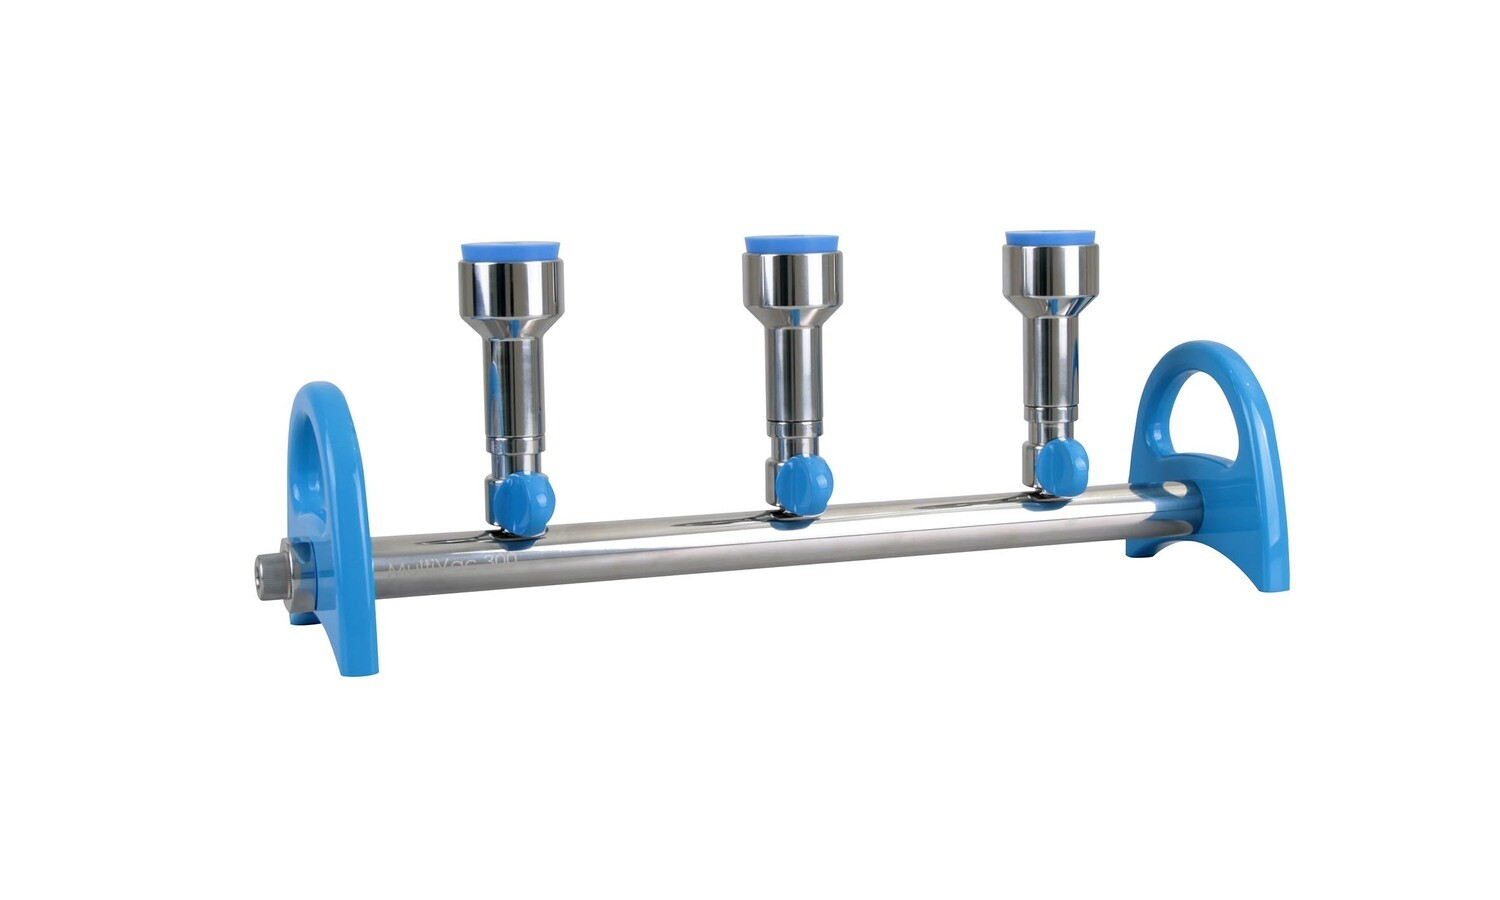 Stainless Steel Multi-Branch Manifold MultiVac 300-MS / MultiVac 600-MS